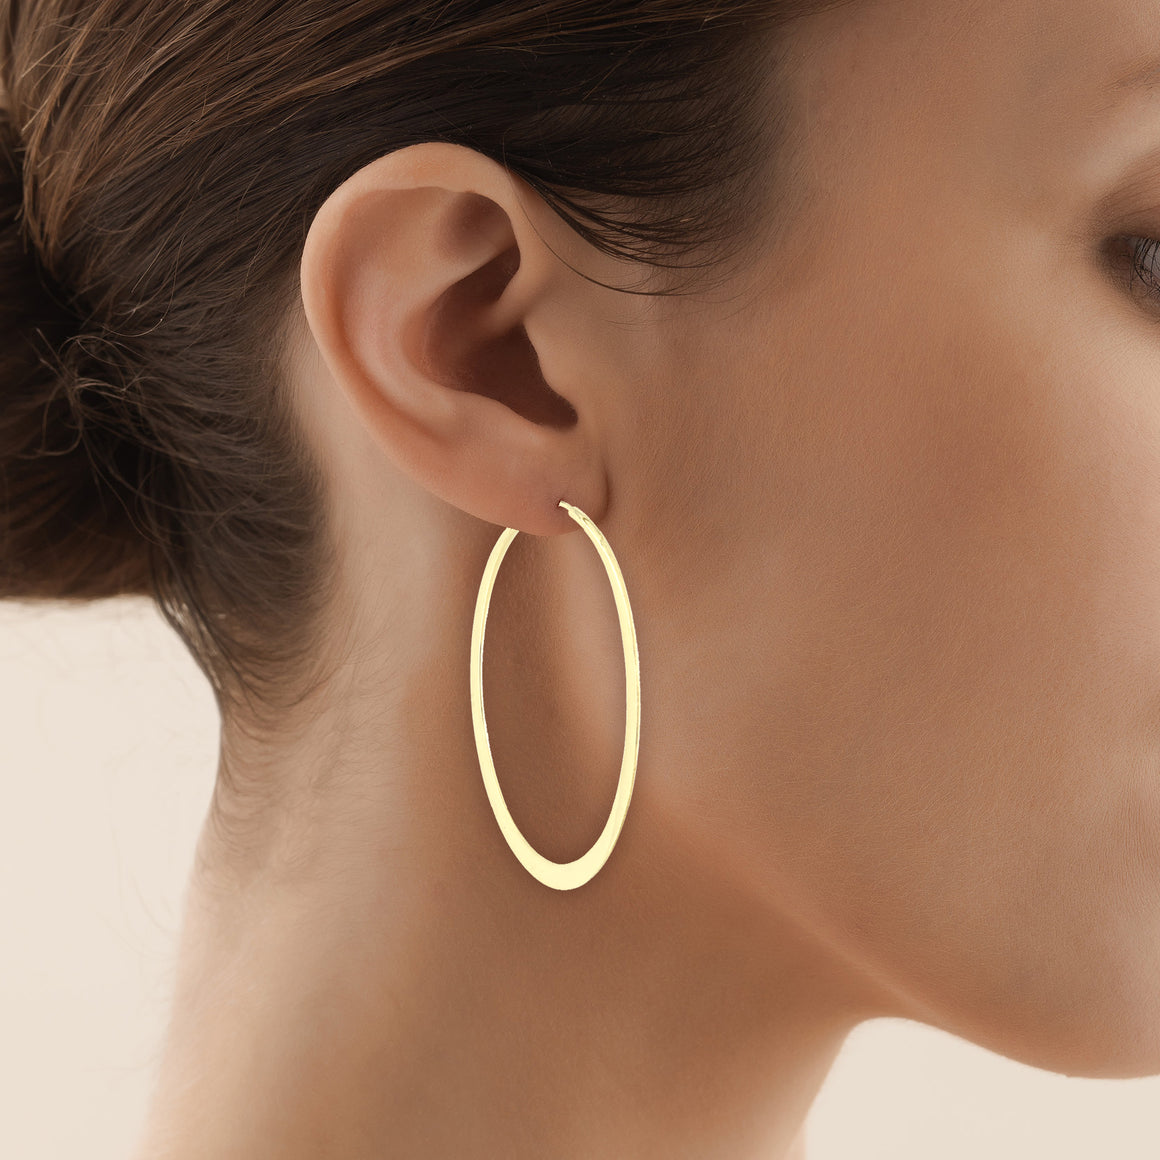 Endless Hoop Earrings in Polished Yellow Gold - 2 inch